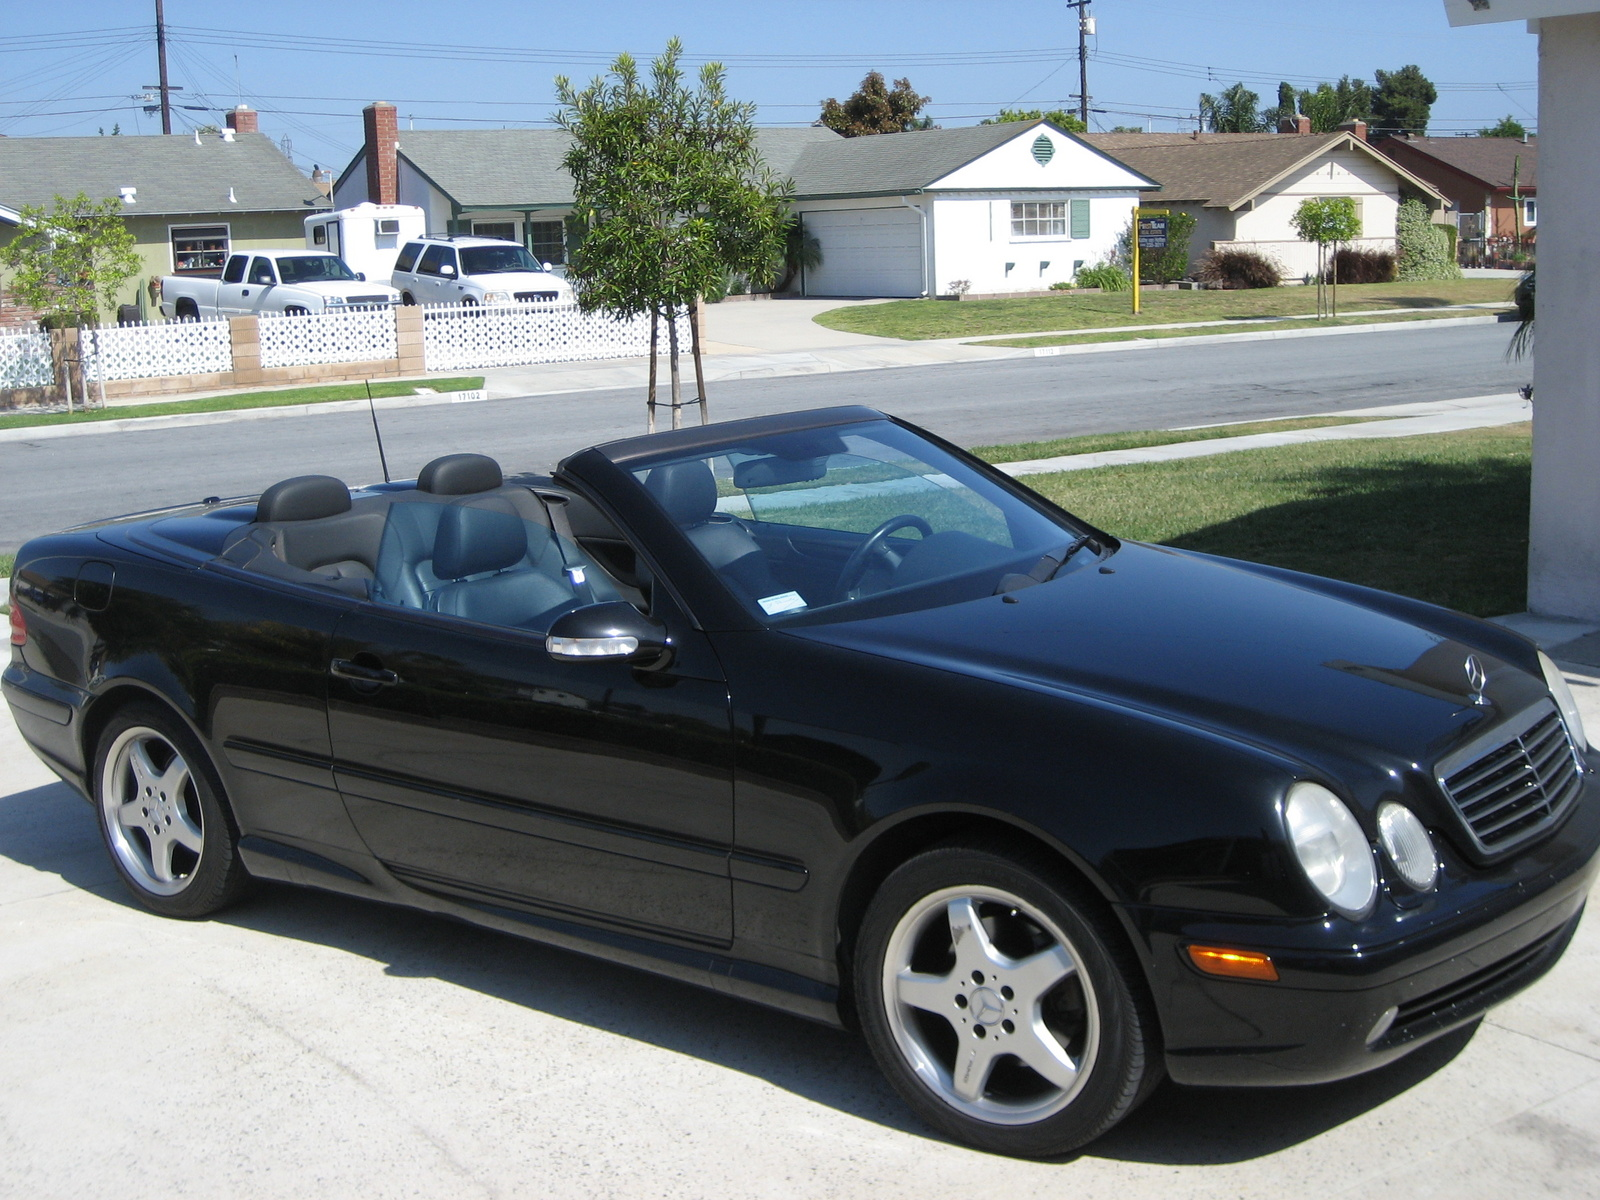 2002 Mercedes Benz CLK Class Pictures C6138 on 2000 mercedes clk 430 amg convertible price